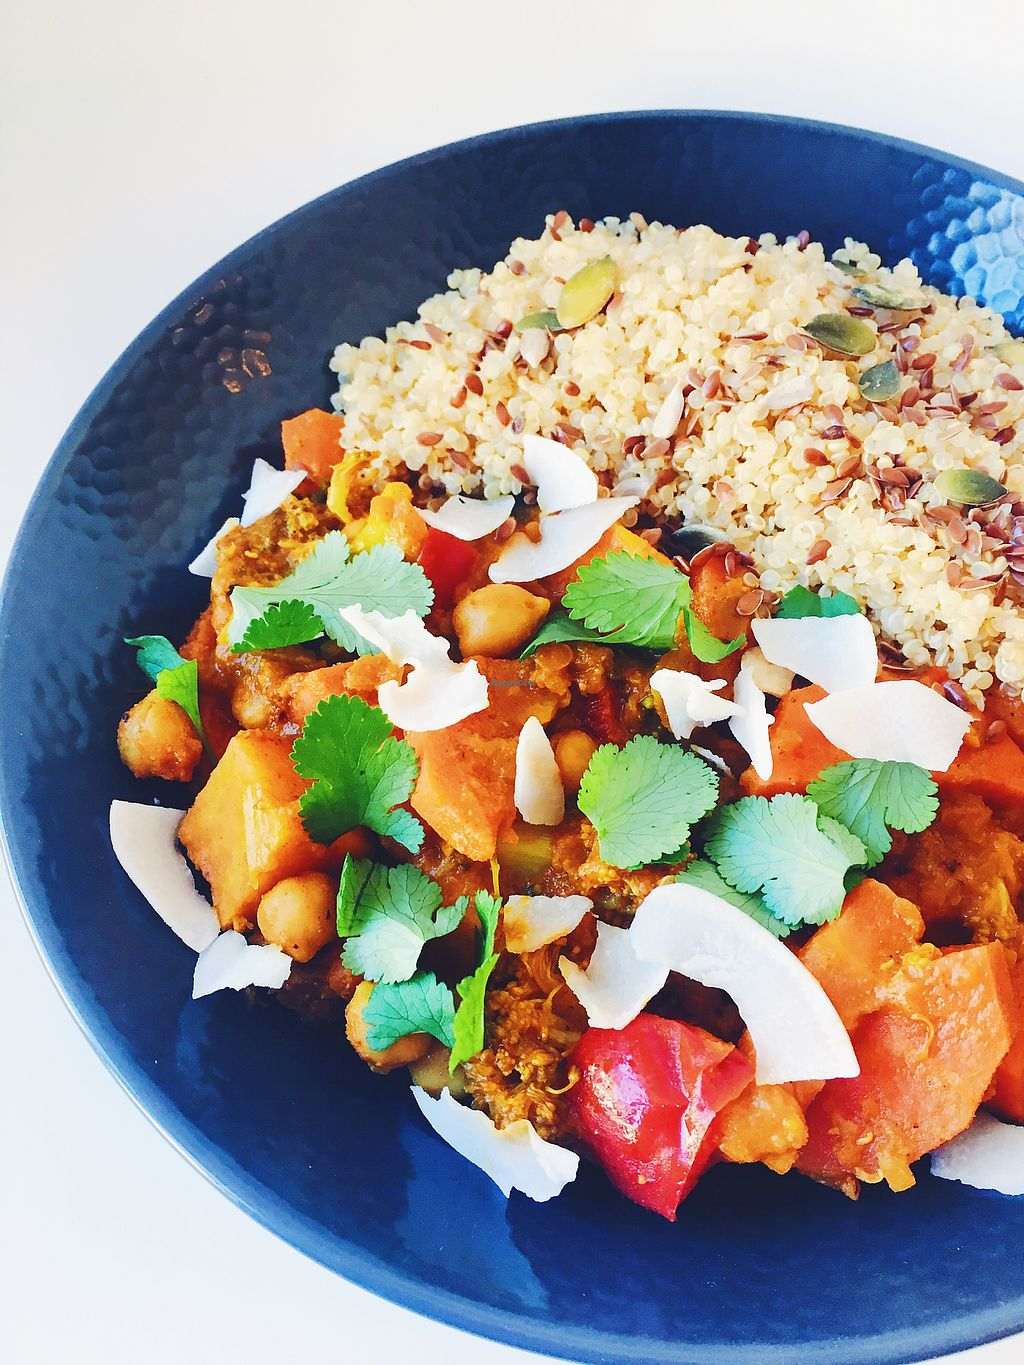 """Photo of Oh My Greens  by <a href=""""/members/profile/Ohmygreens"""">Ohmygreens</a> <br/>Indian curry served with quinoa <br/> March 14, 2018  - <a href='/contact/abuse/image/100841/370473'>Report</a>"""